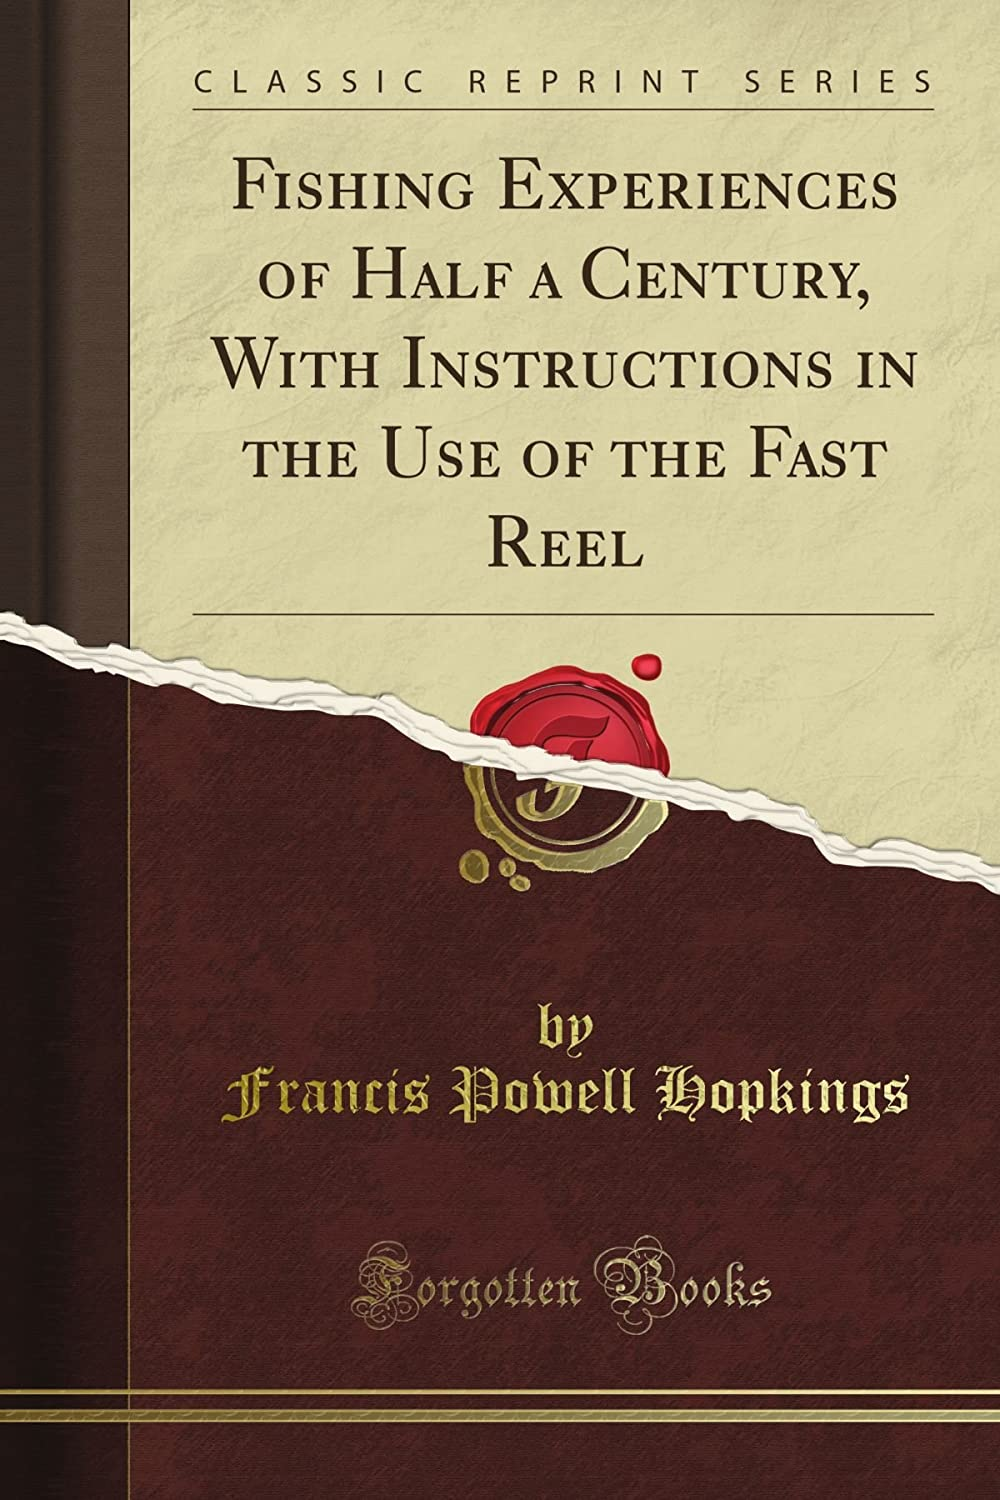 Fishing Experiences of Half a Century, With Instructions in the Use of the Fast Reel (Classic Reprint)